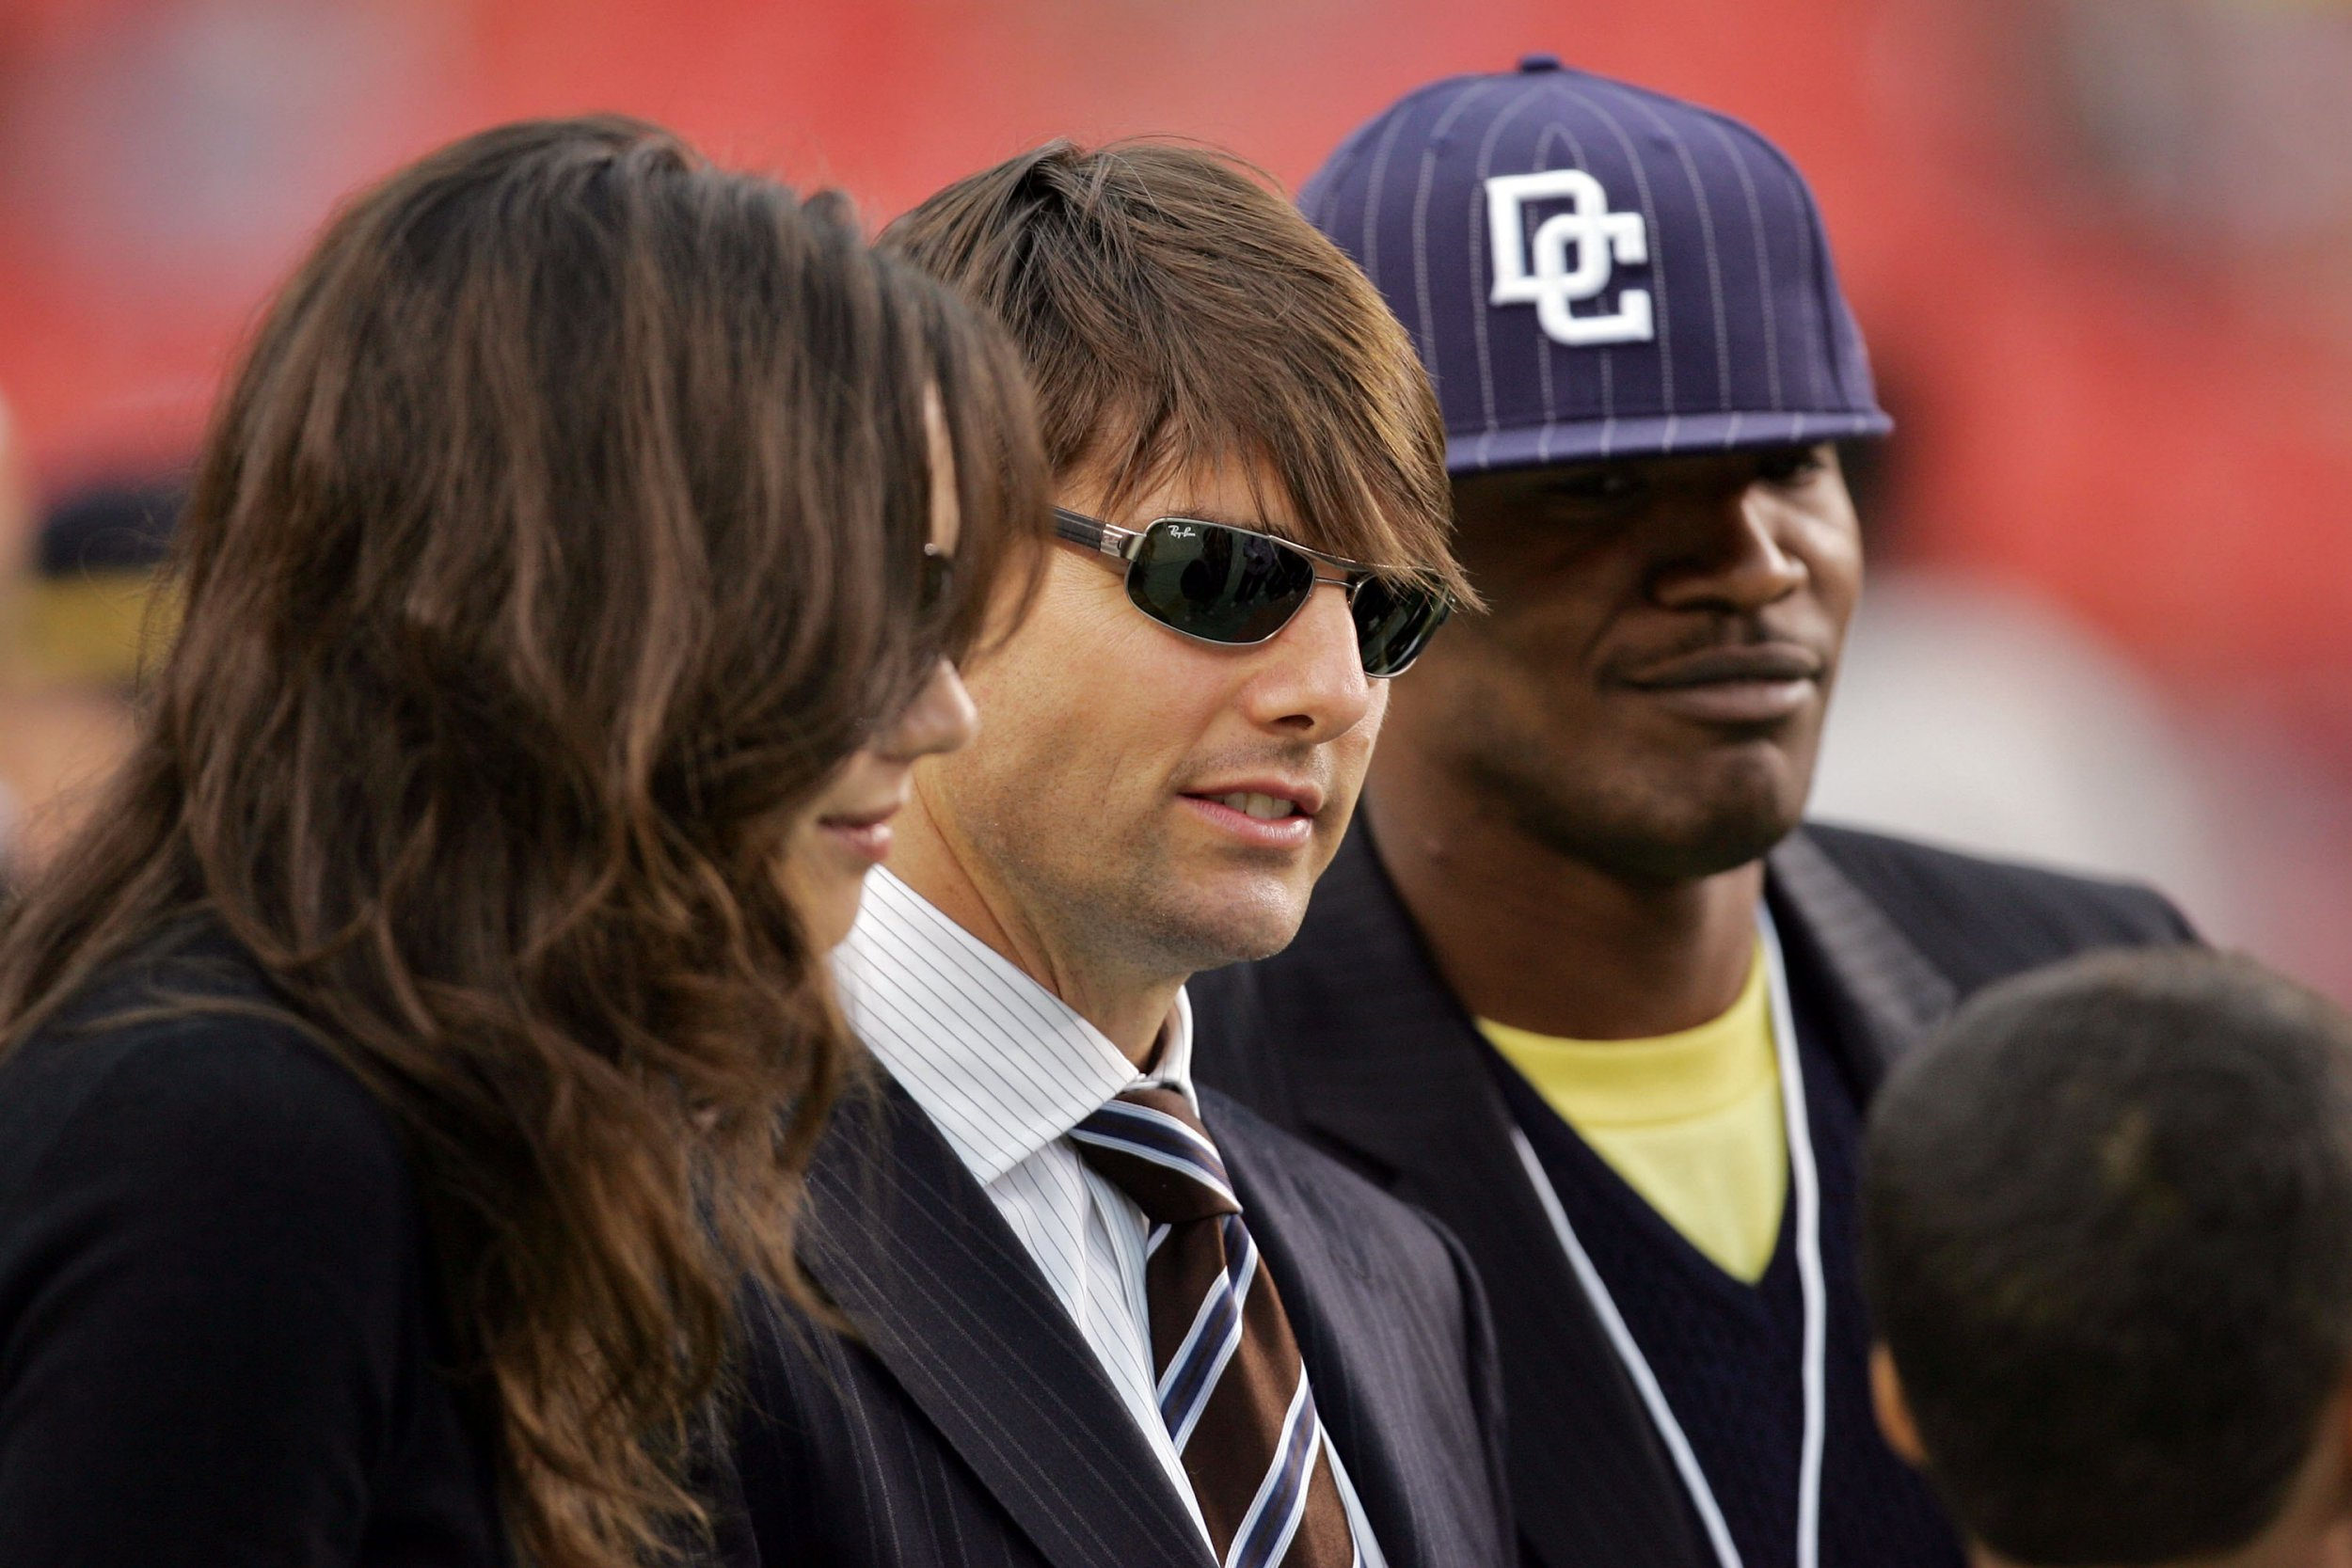 Katie Holmes and Jamie Foxx's first picture together also included Tom Cruise